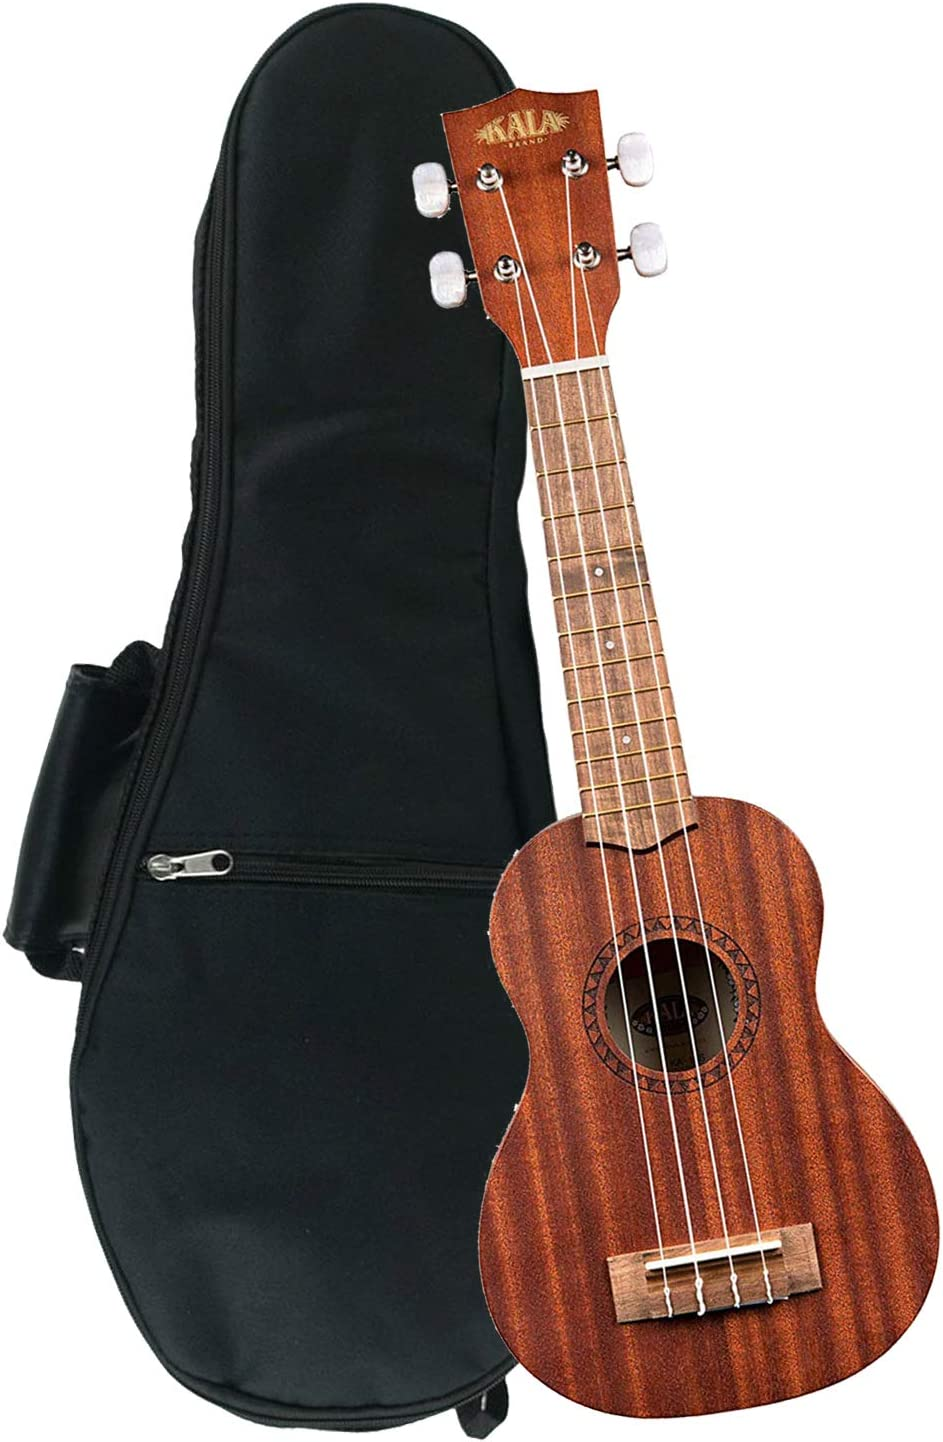 Top 10 Best Ukulele for Kids (2020 Reviews & Buying Guide) 5